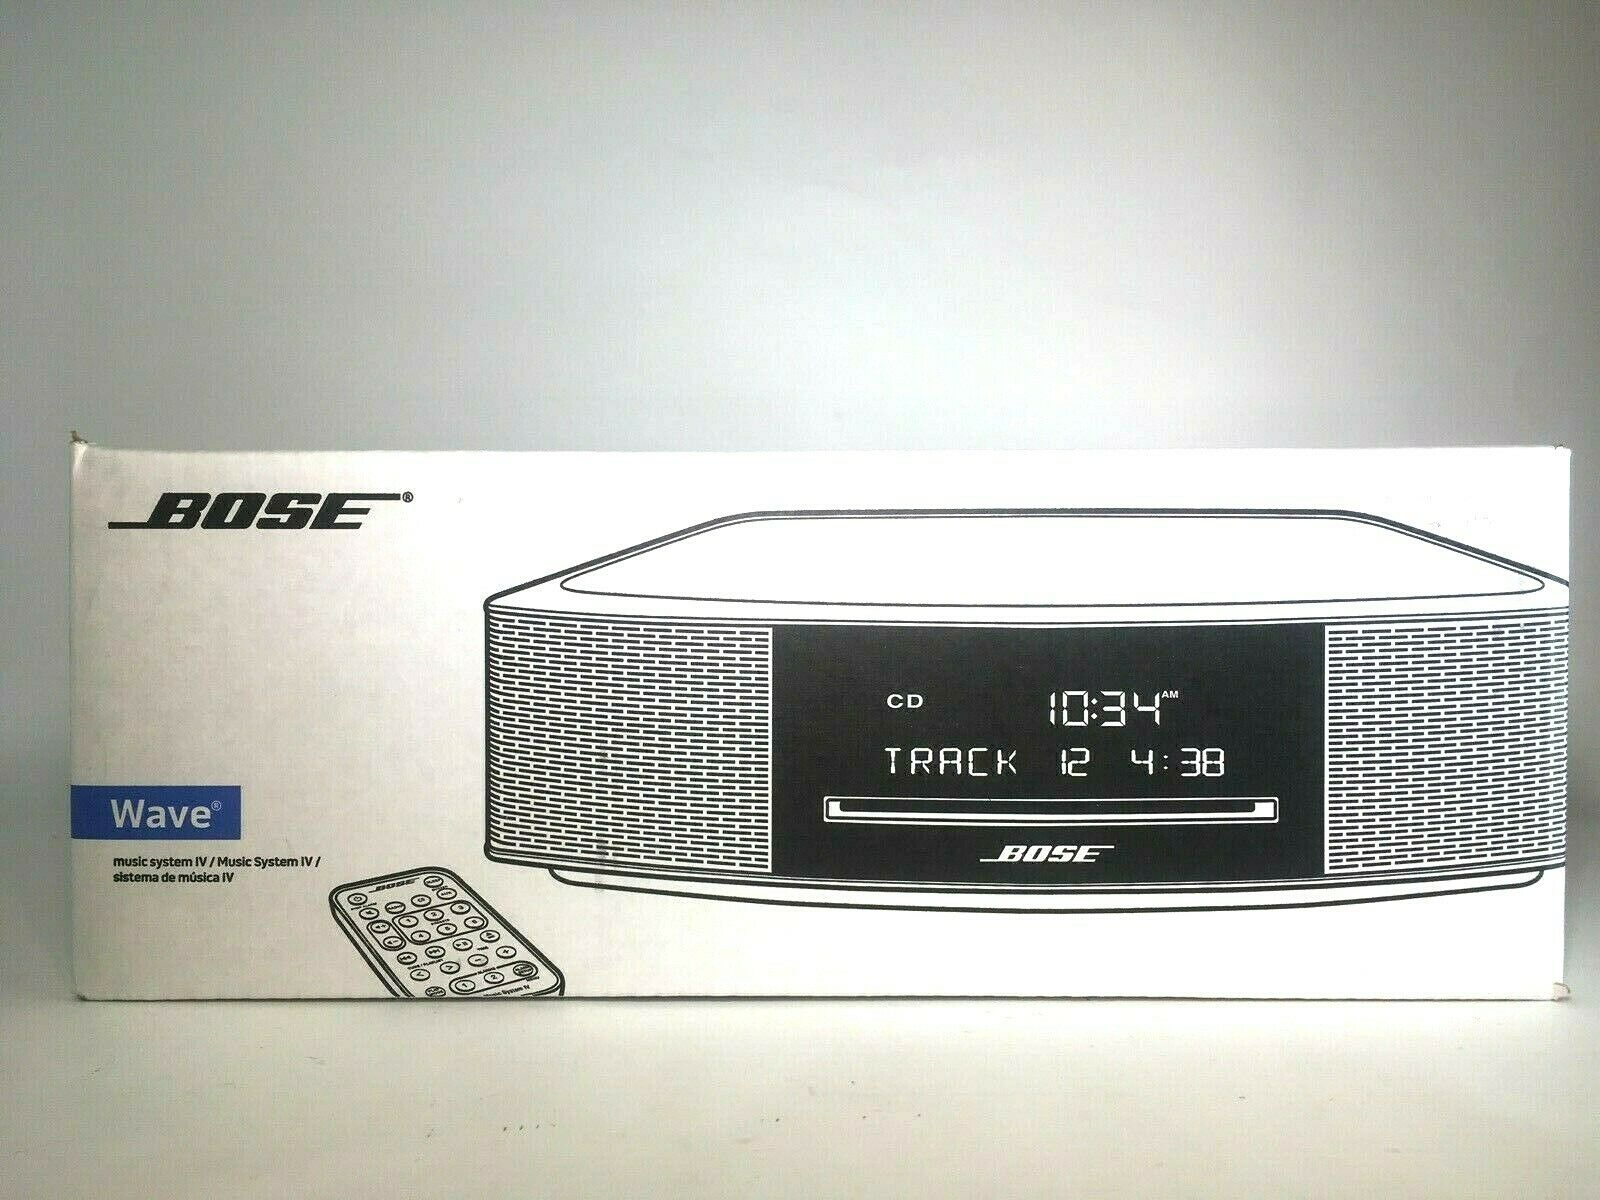 Bose Wave Music System IV with Remote, CD Player and AM/FM R